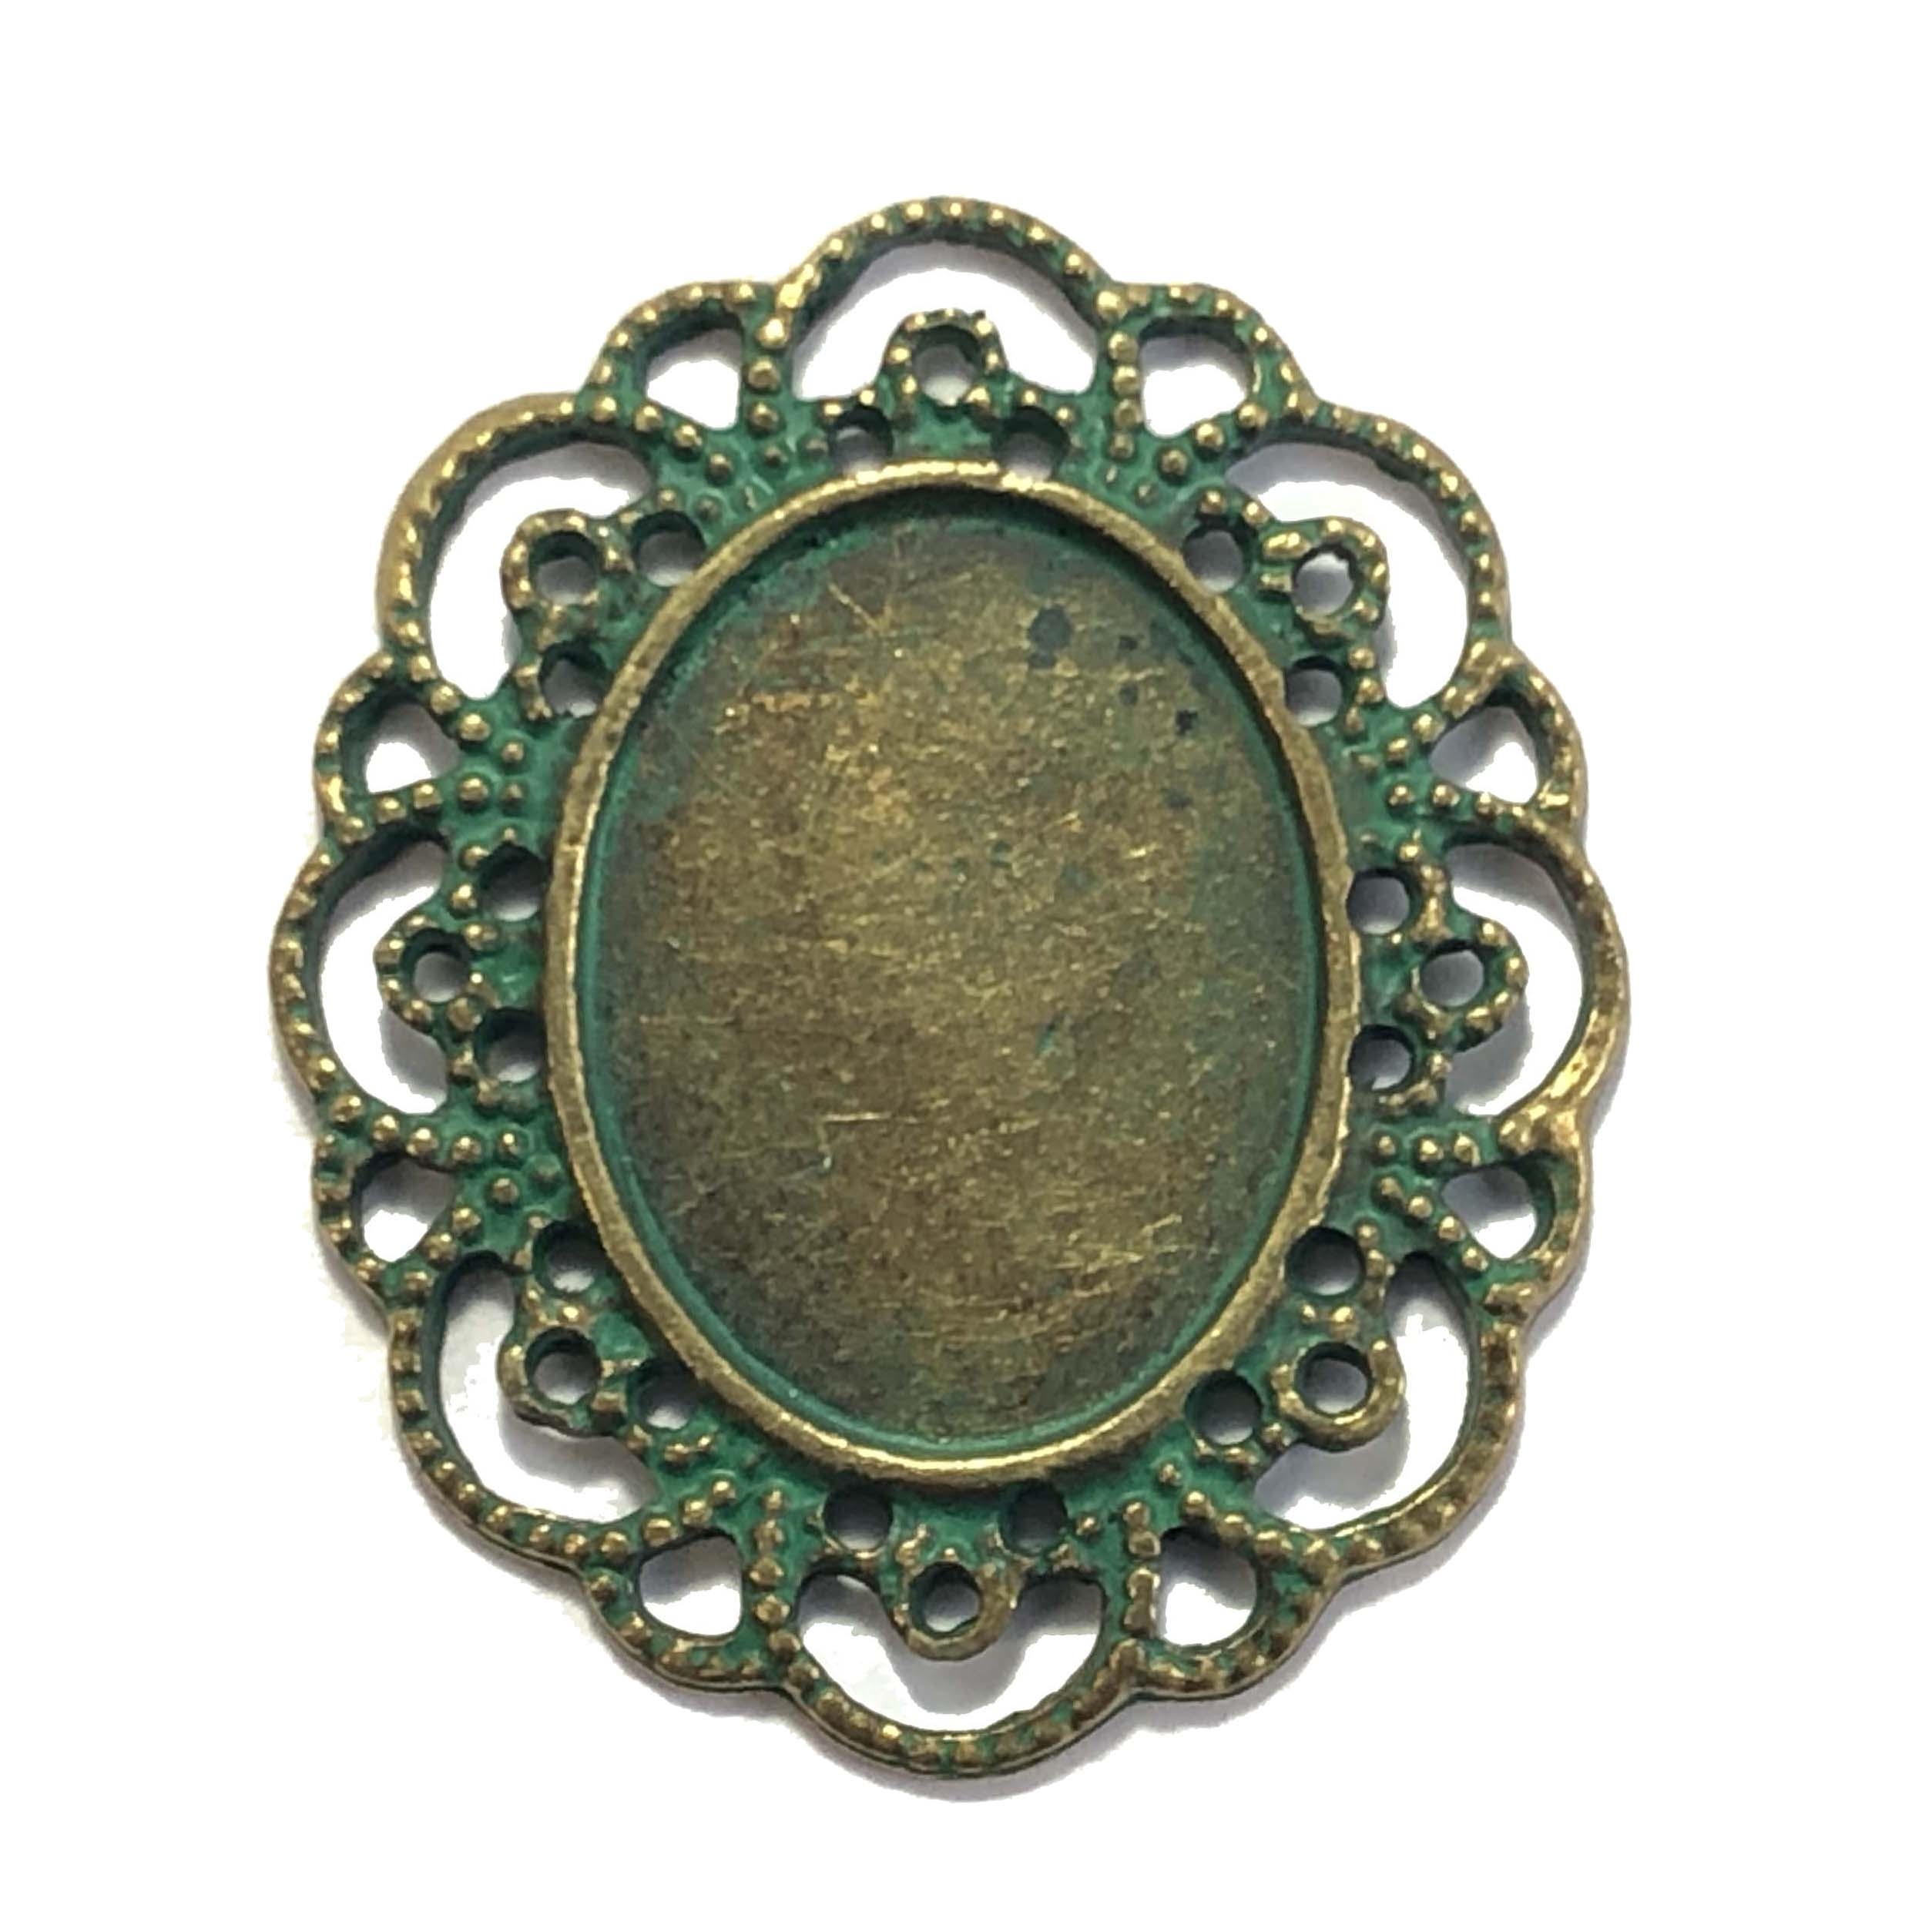 Victorian bezel, lace edge bezel, bronze, 09578, mount, ceralun, jewelry supplies, B'sue Boutiques, 25x18mm mount,  antique bronze finish, pendant, green patina, jewlery making supplies